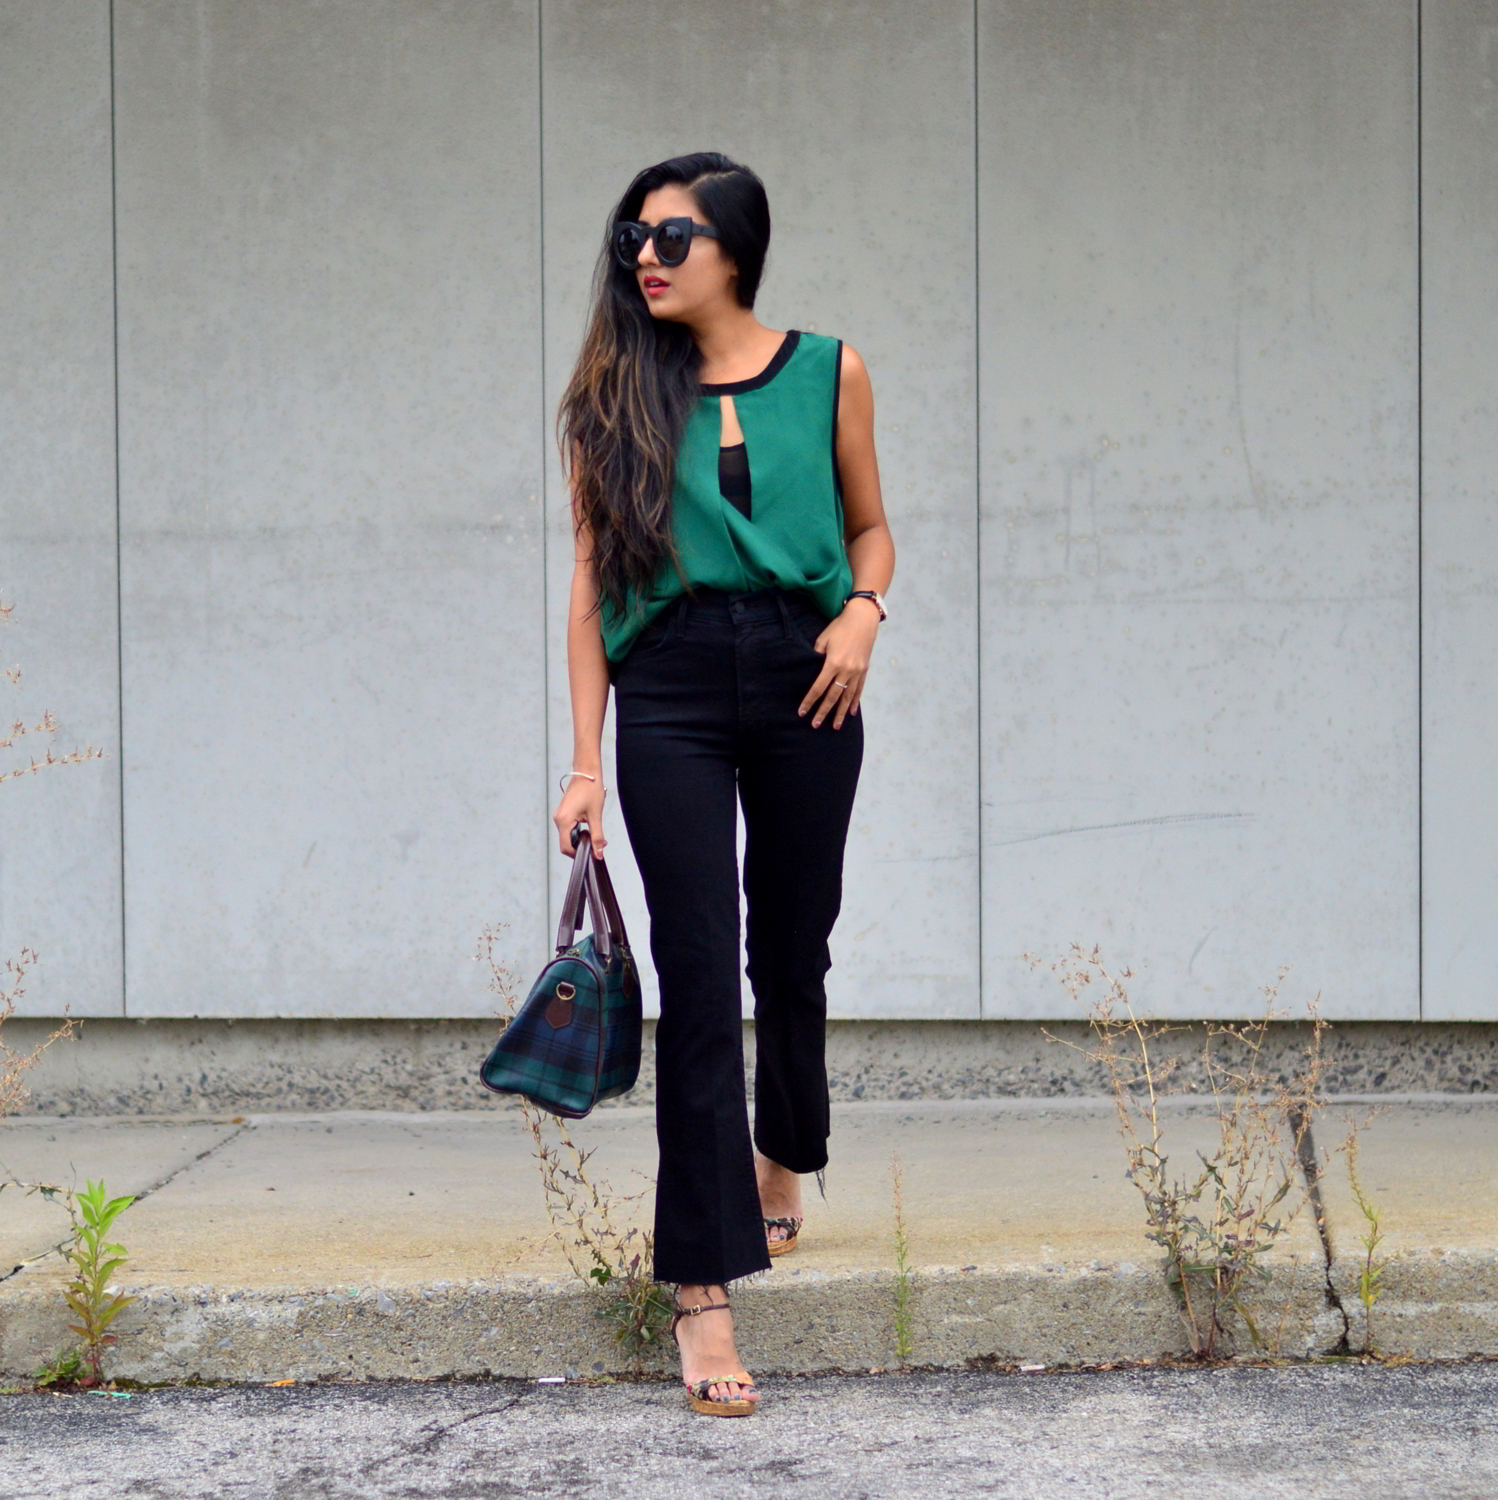 workwear-fall-style-emerald-silk-blouse-cropped-flared-jeans 3